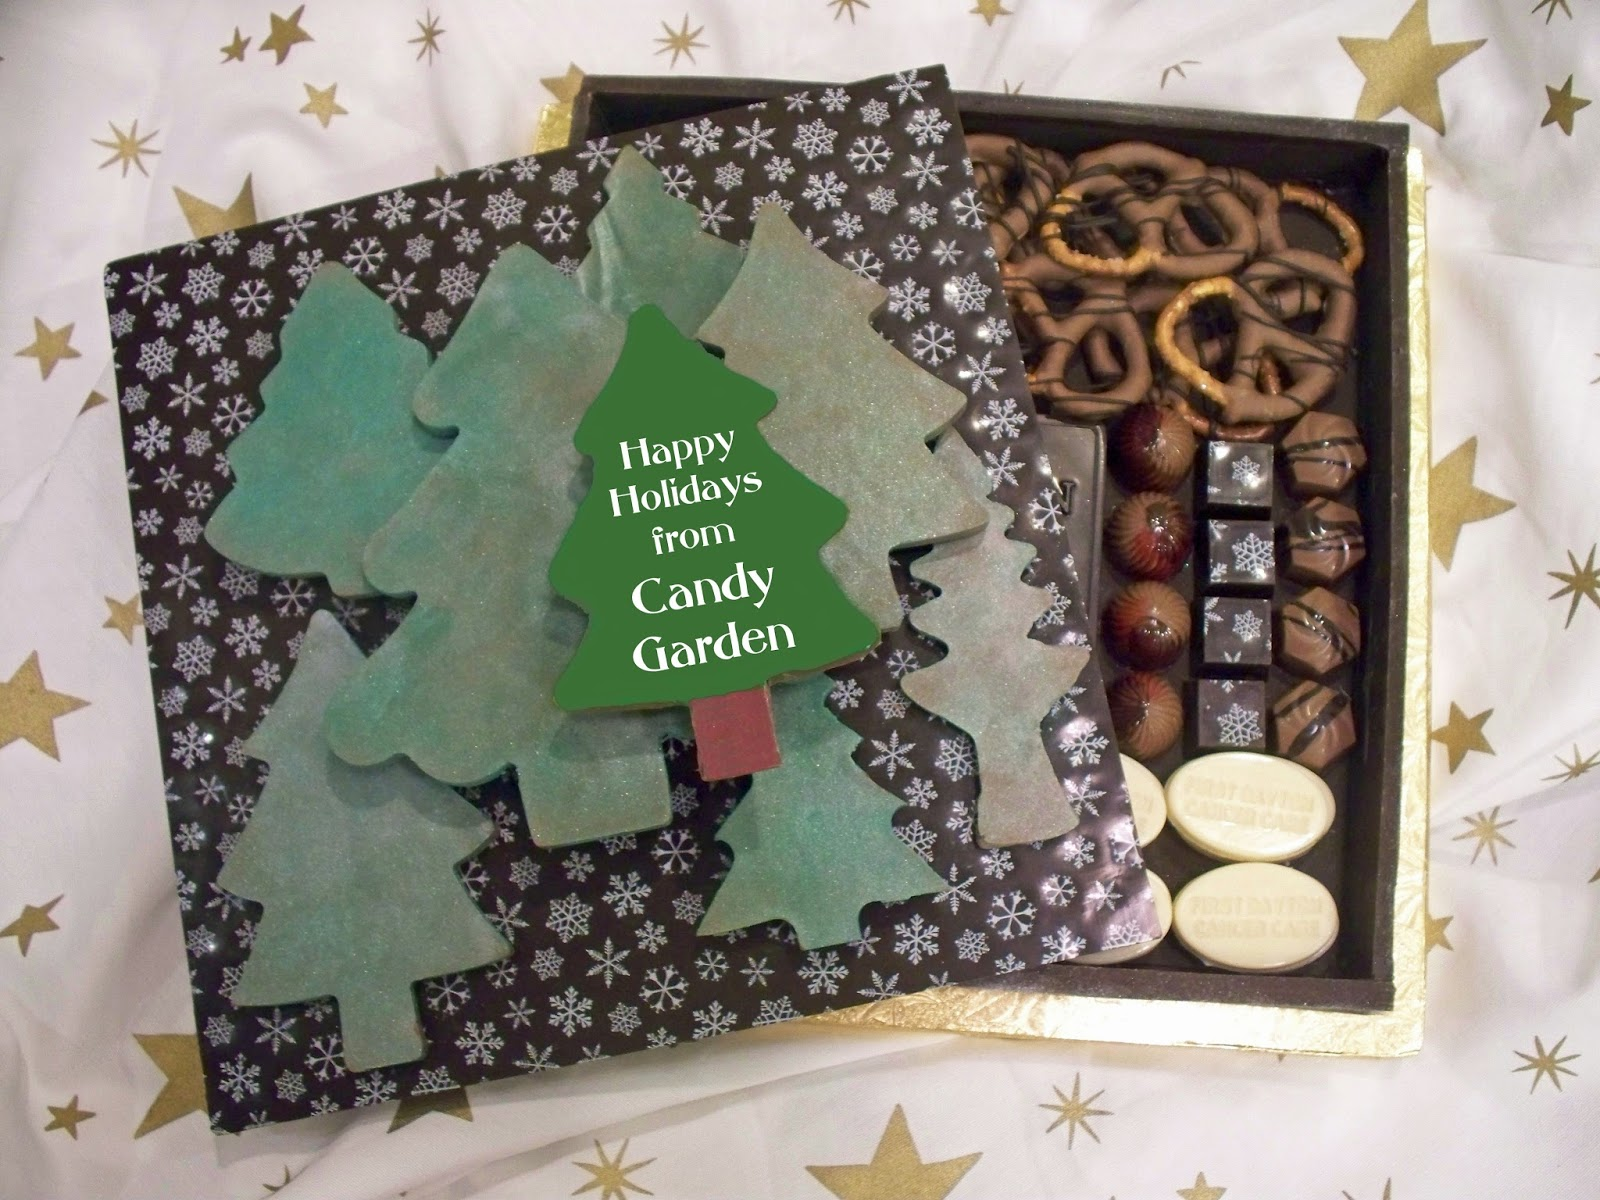 Handmade Chocolates Decorated With Chocolate Transfer Sheets